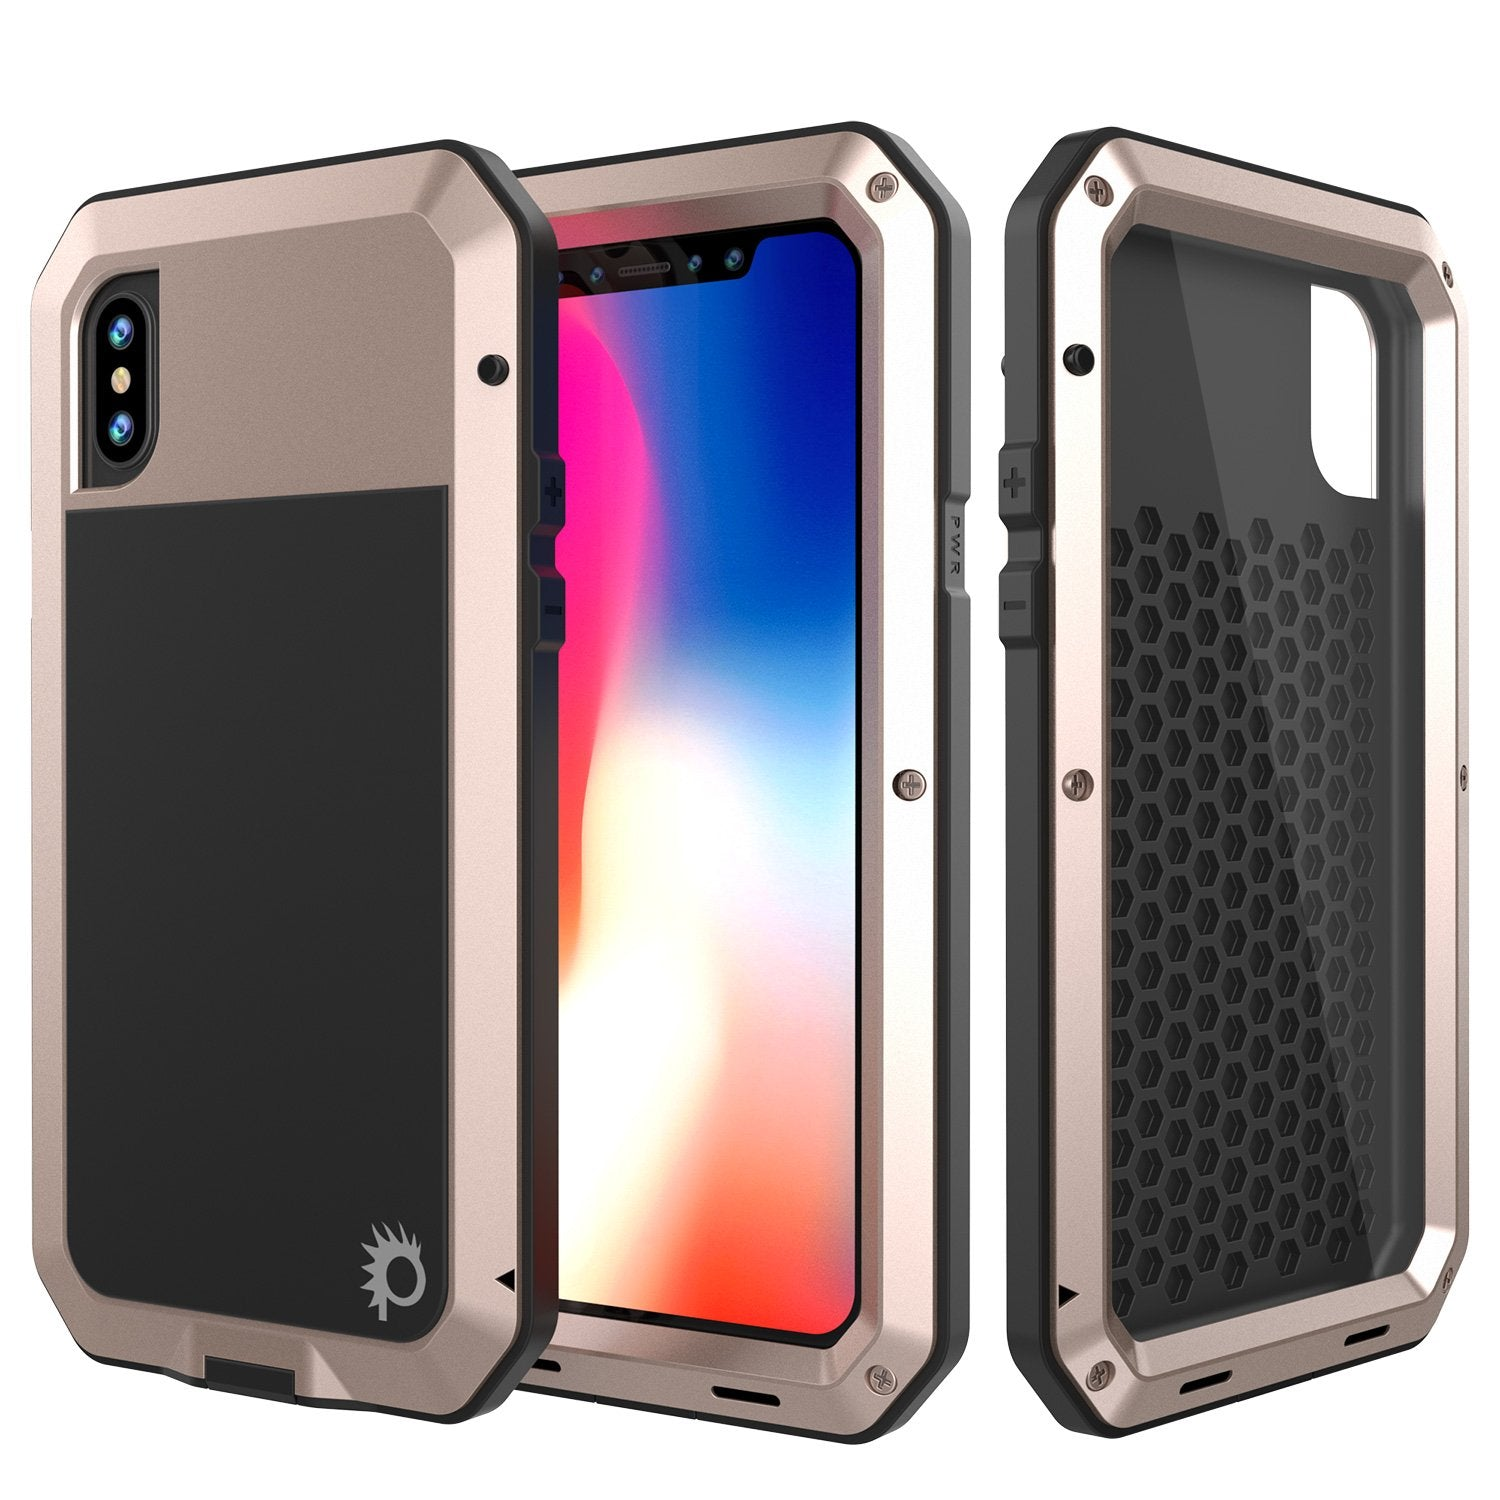 factory authentic f4aed c9258 iPhone XR Metal Case, Heavy Duty Military Grade Armor Cover [shock pro